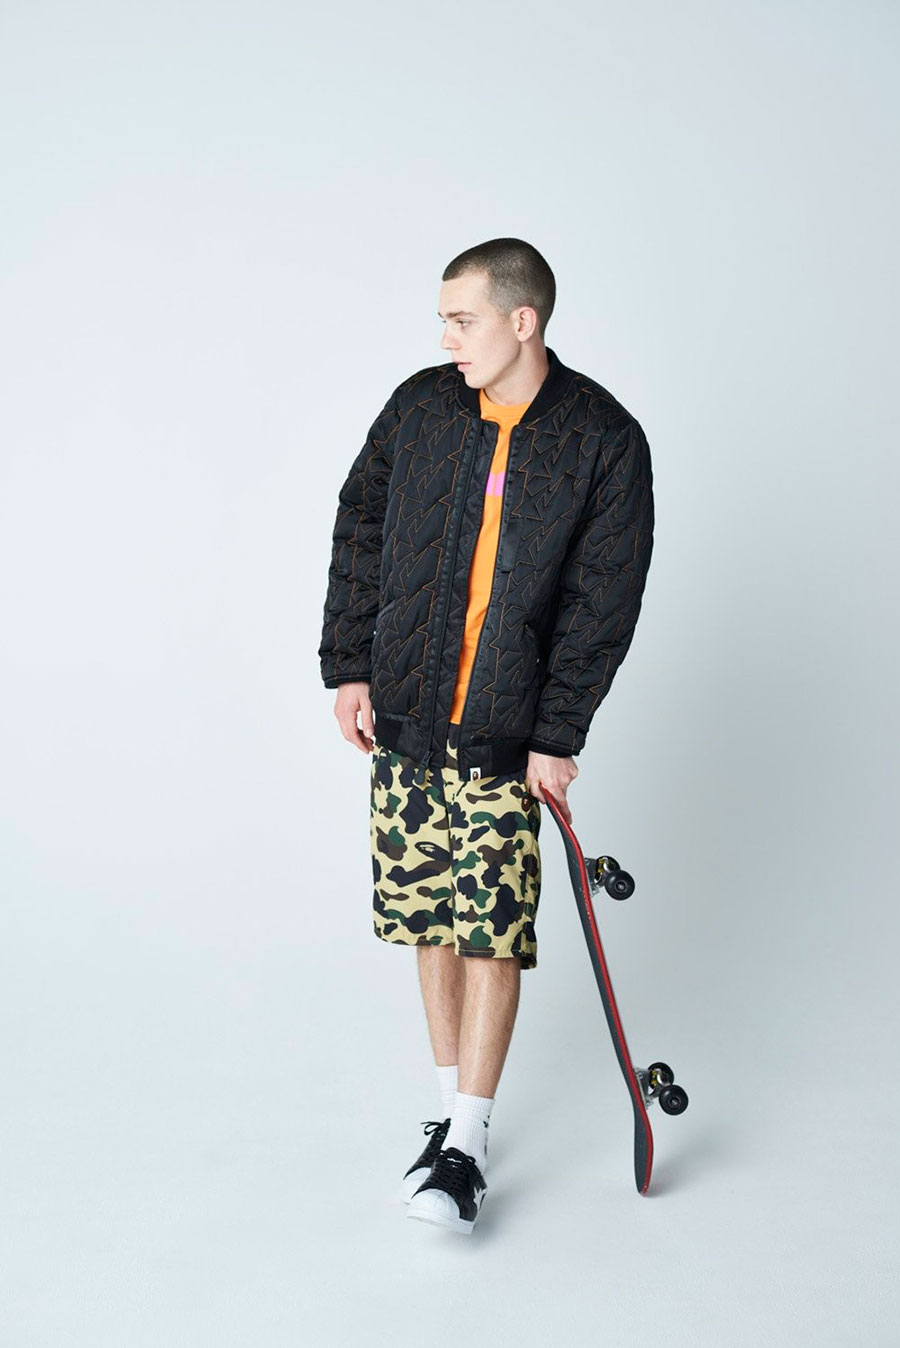 潮牌 A BATHING APE® 发布 2020 最新秋冬男装搭配造型 Lookbook插图(18)